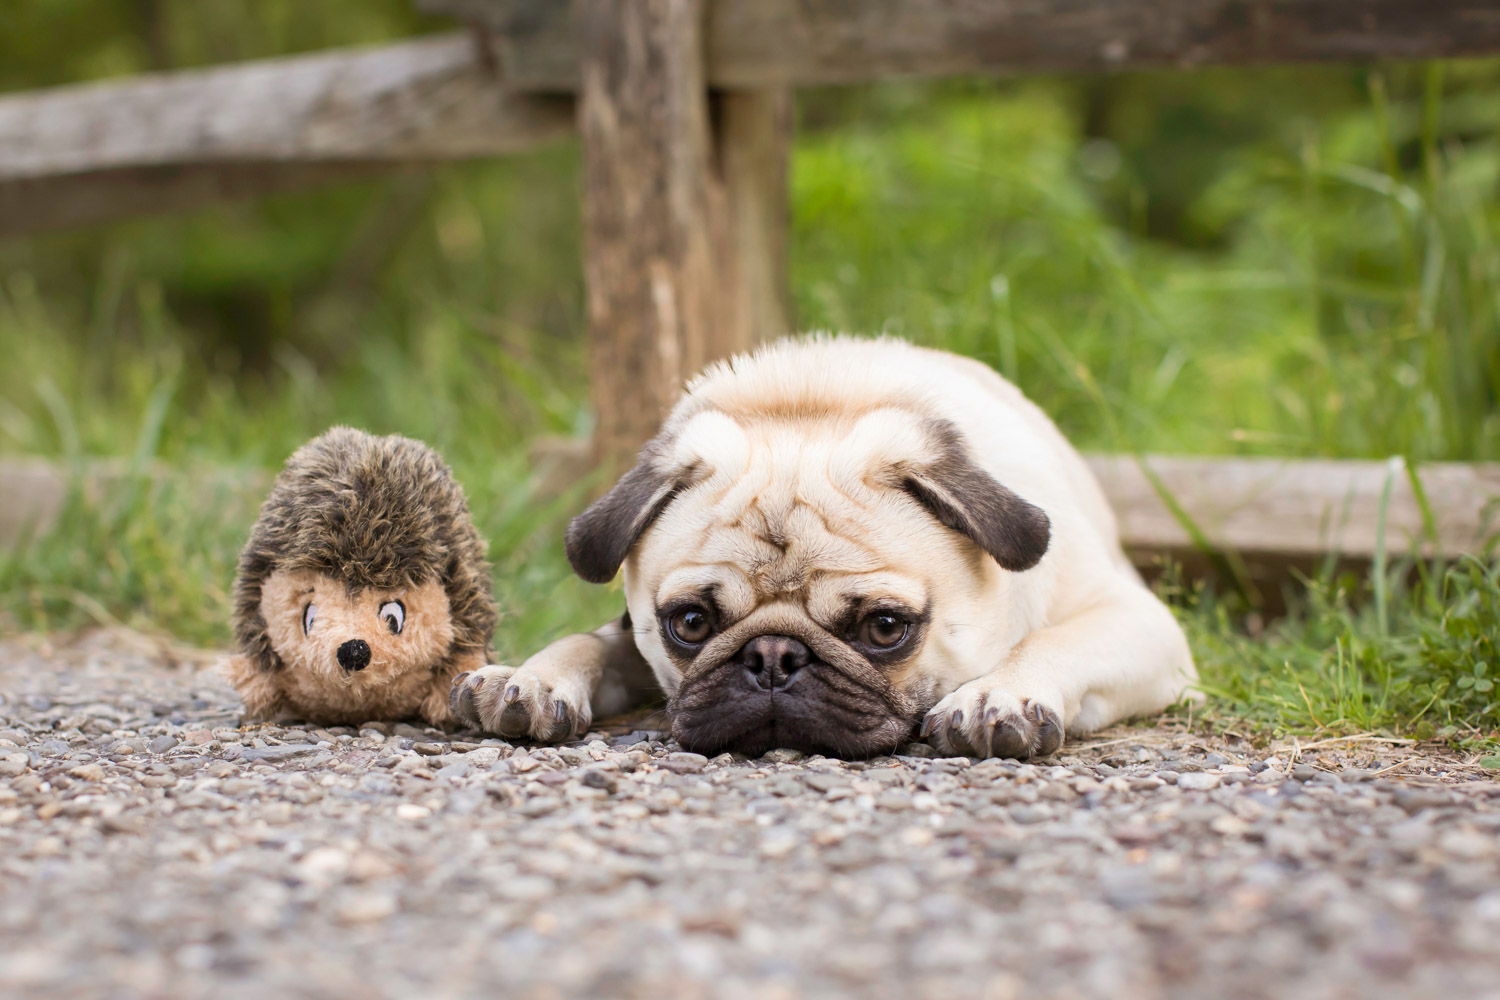 Cute pug posing with his favorite toy